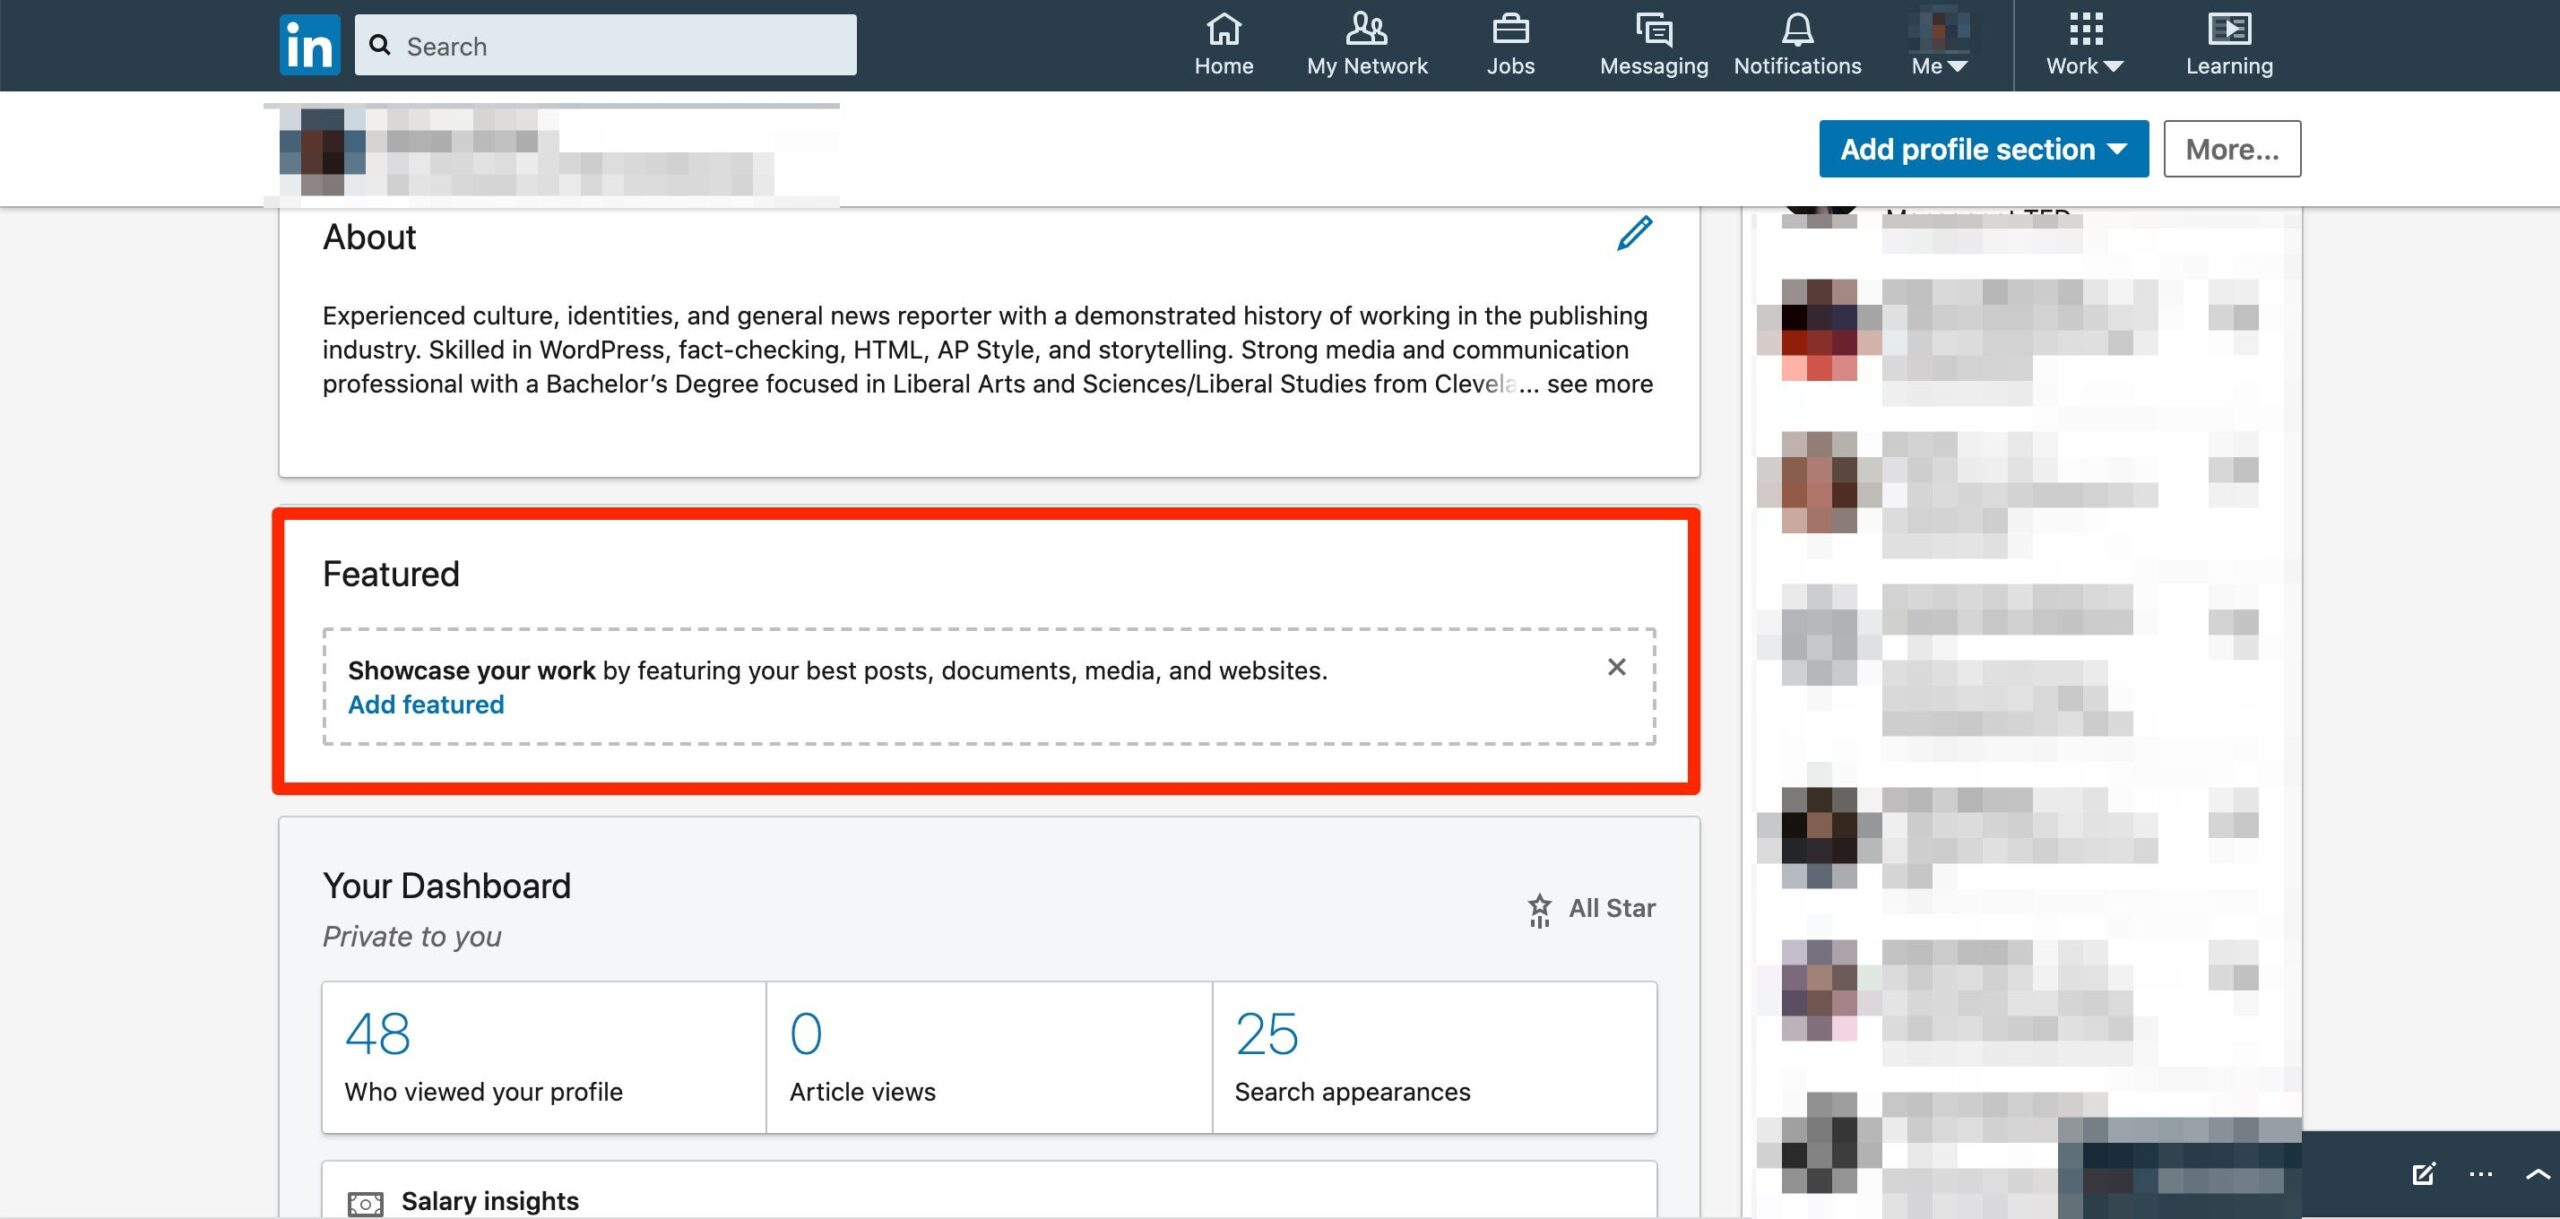 to upload your resume linkedin profile business insider can you put on workabroad edit Resume Can You Put Your Resume On Linkedin